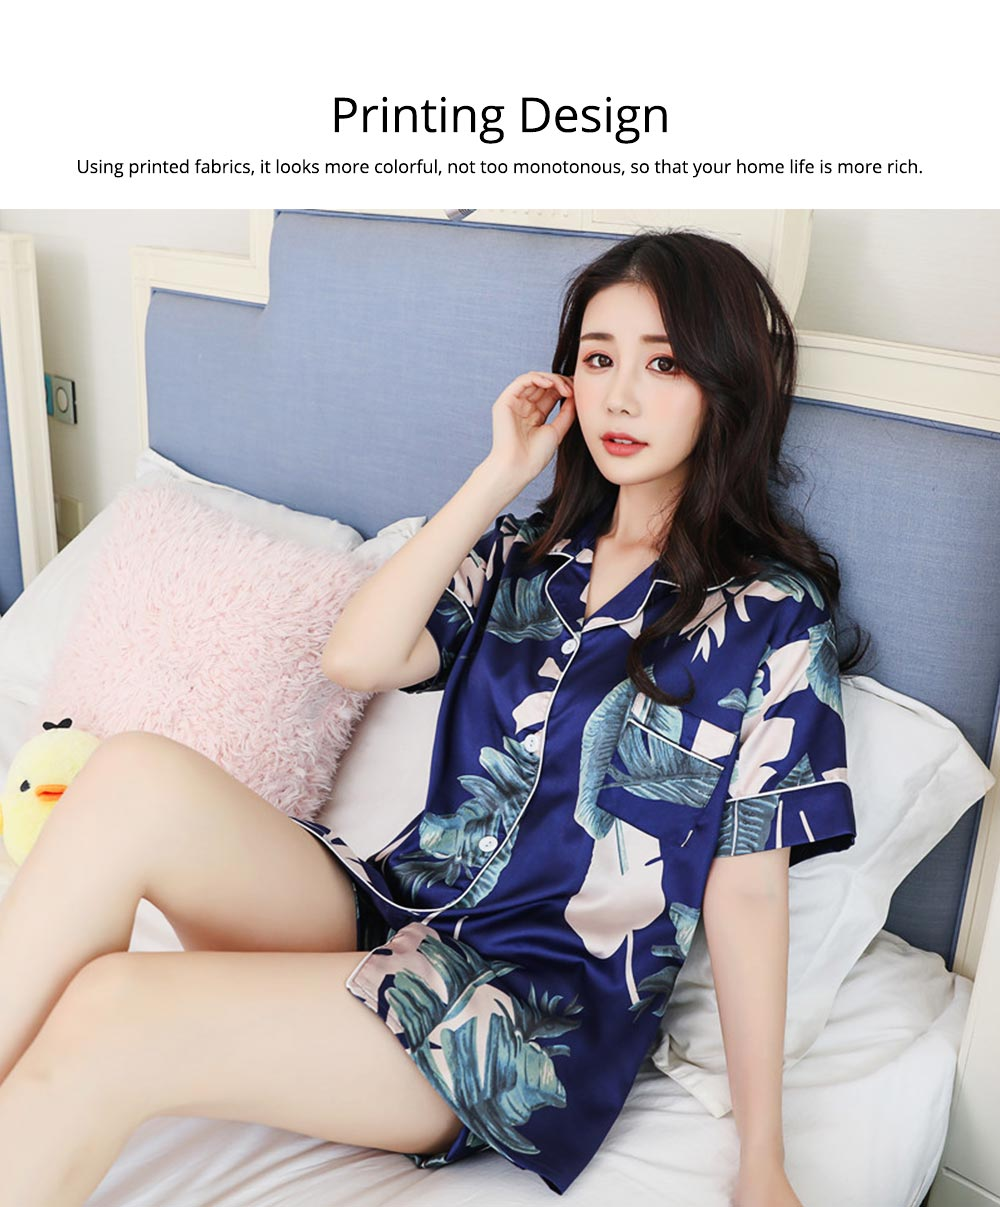 Women Summer Pajamas, Open-top Lapel Silk-like Short Sleeves, Printed Household Clothing for Lady Girl 4